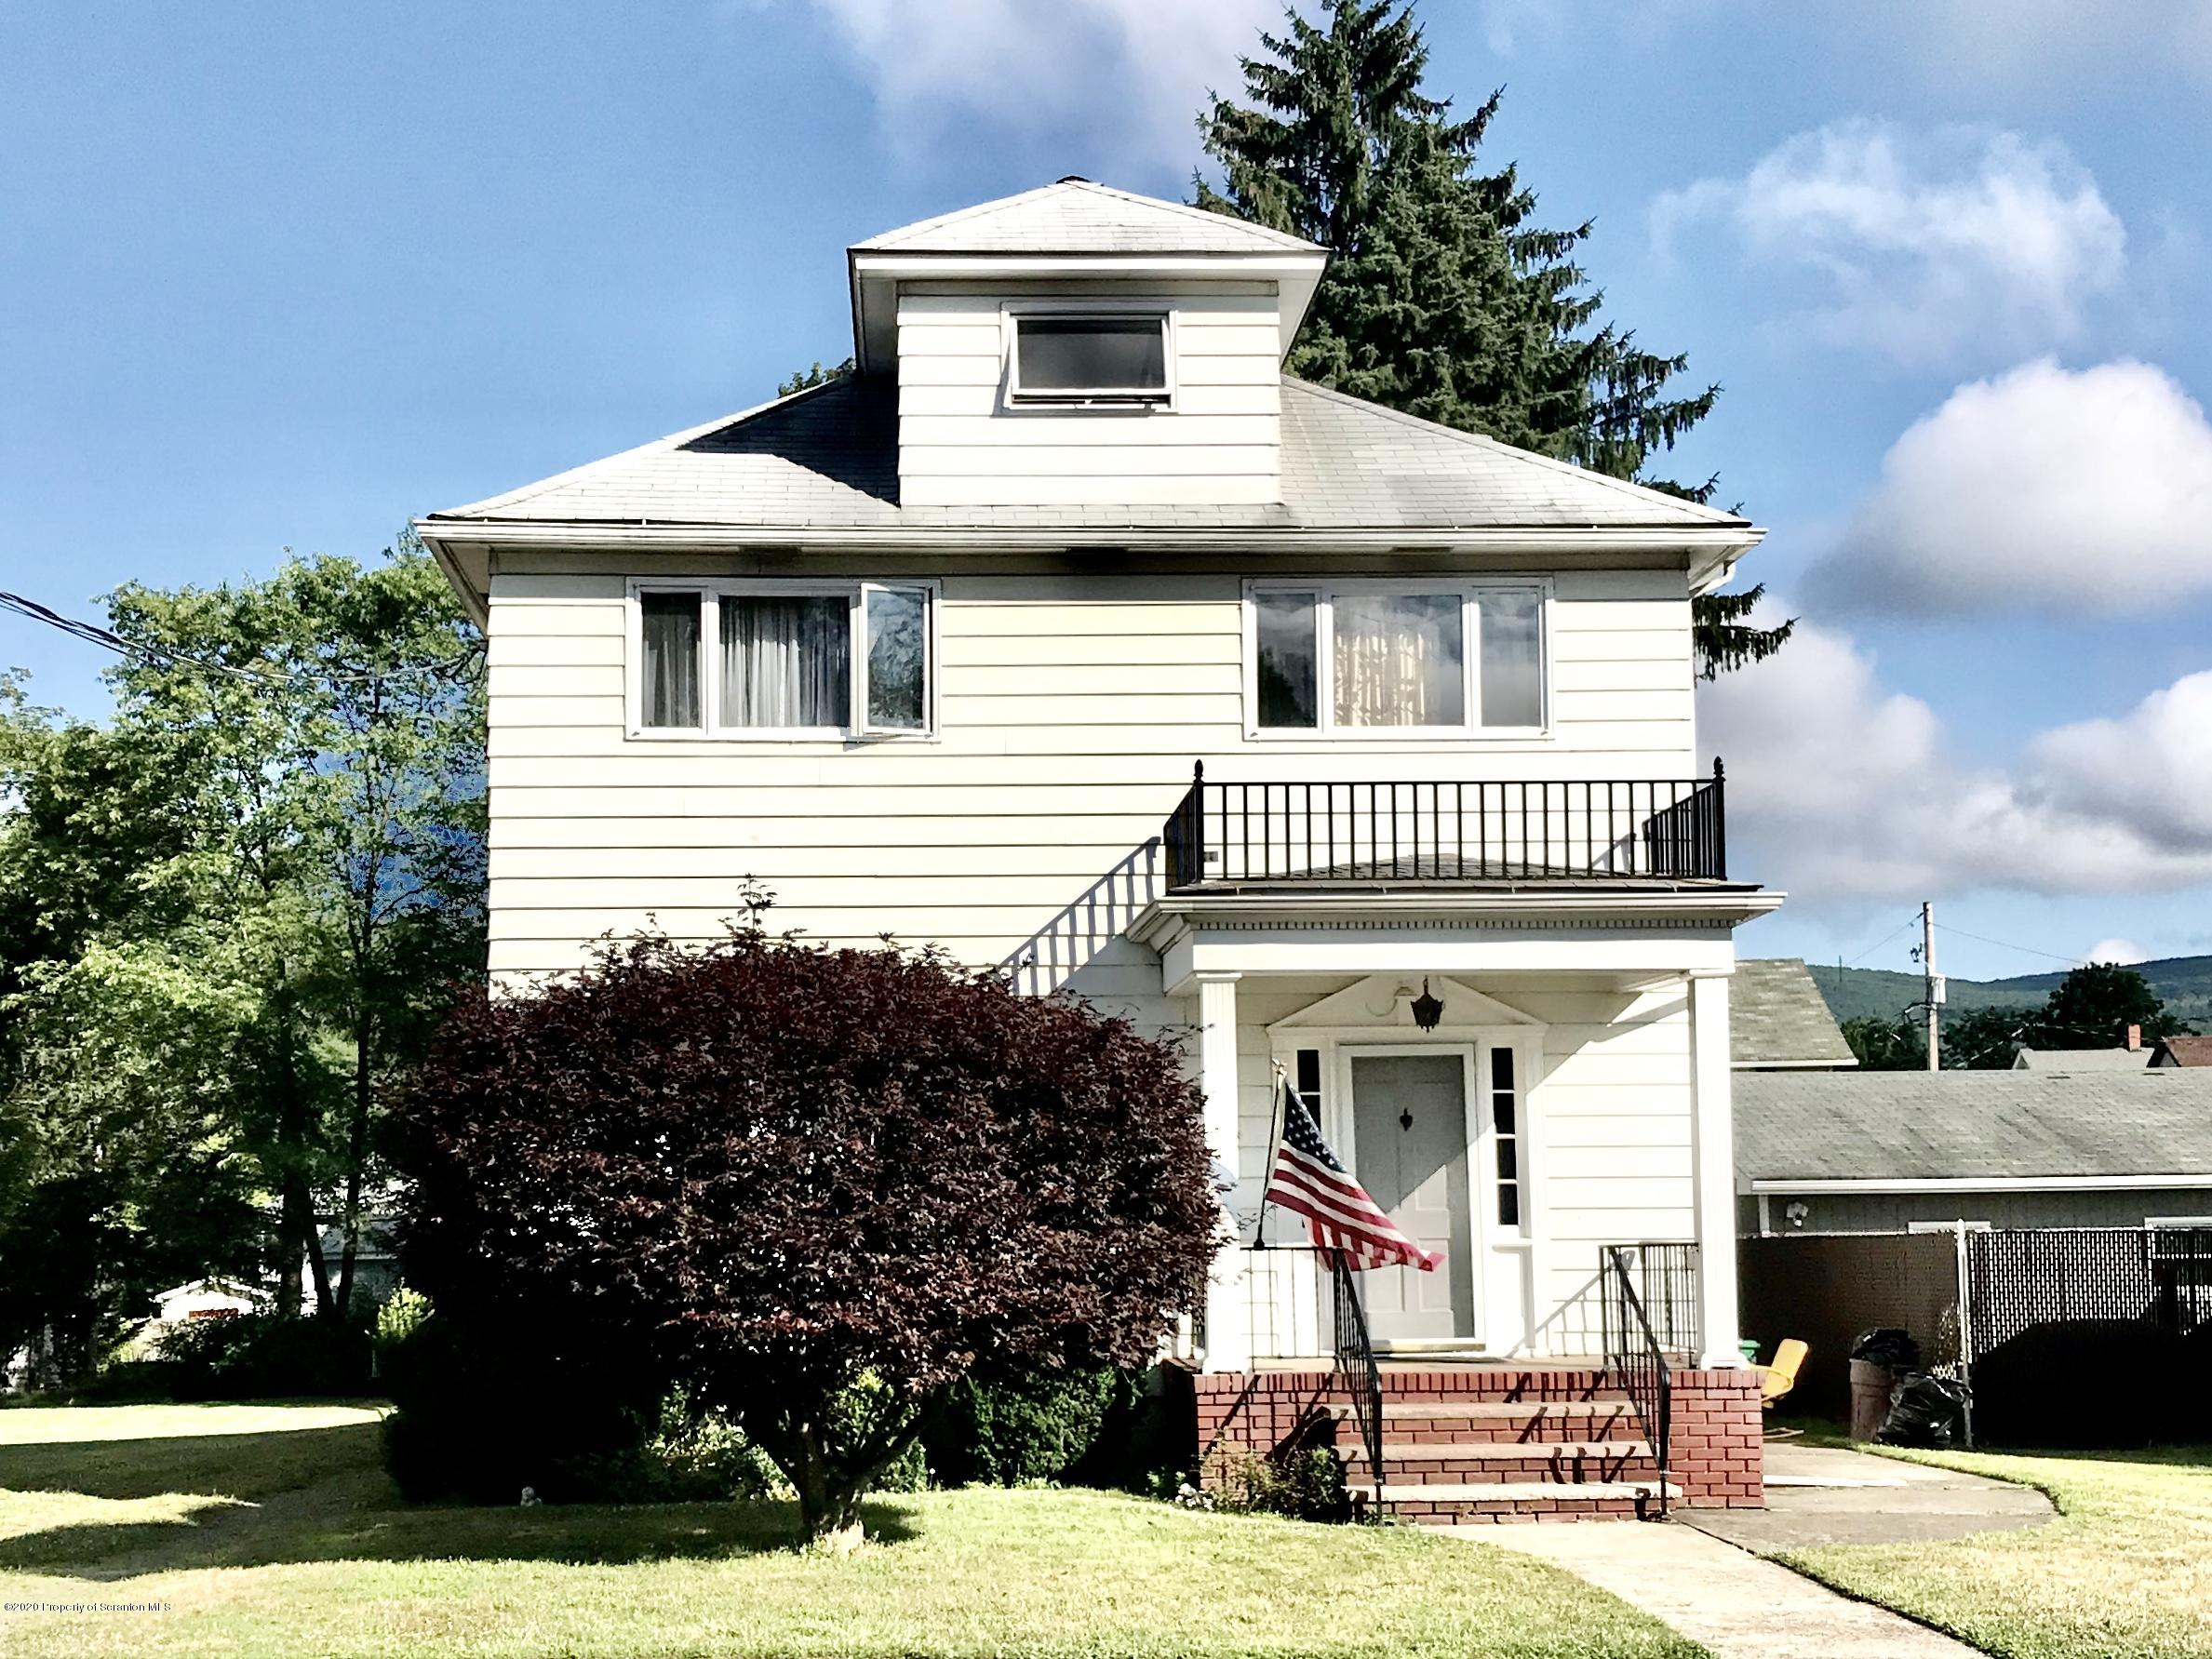 602 4th St, Jessup, Pennsylvania 18434, 4 Bedrooms Bedrooms, 7 Rooms Rooms,1 BathroomBathrooms,Single Family,For Sale,4th,20-2854